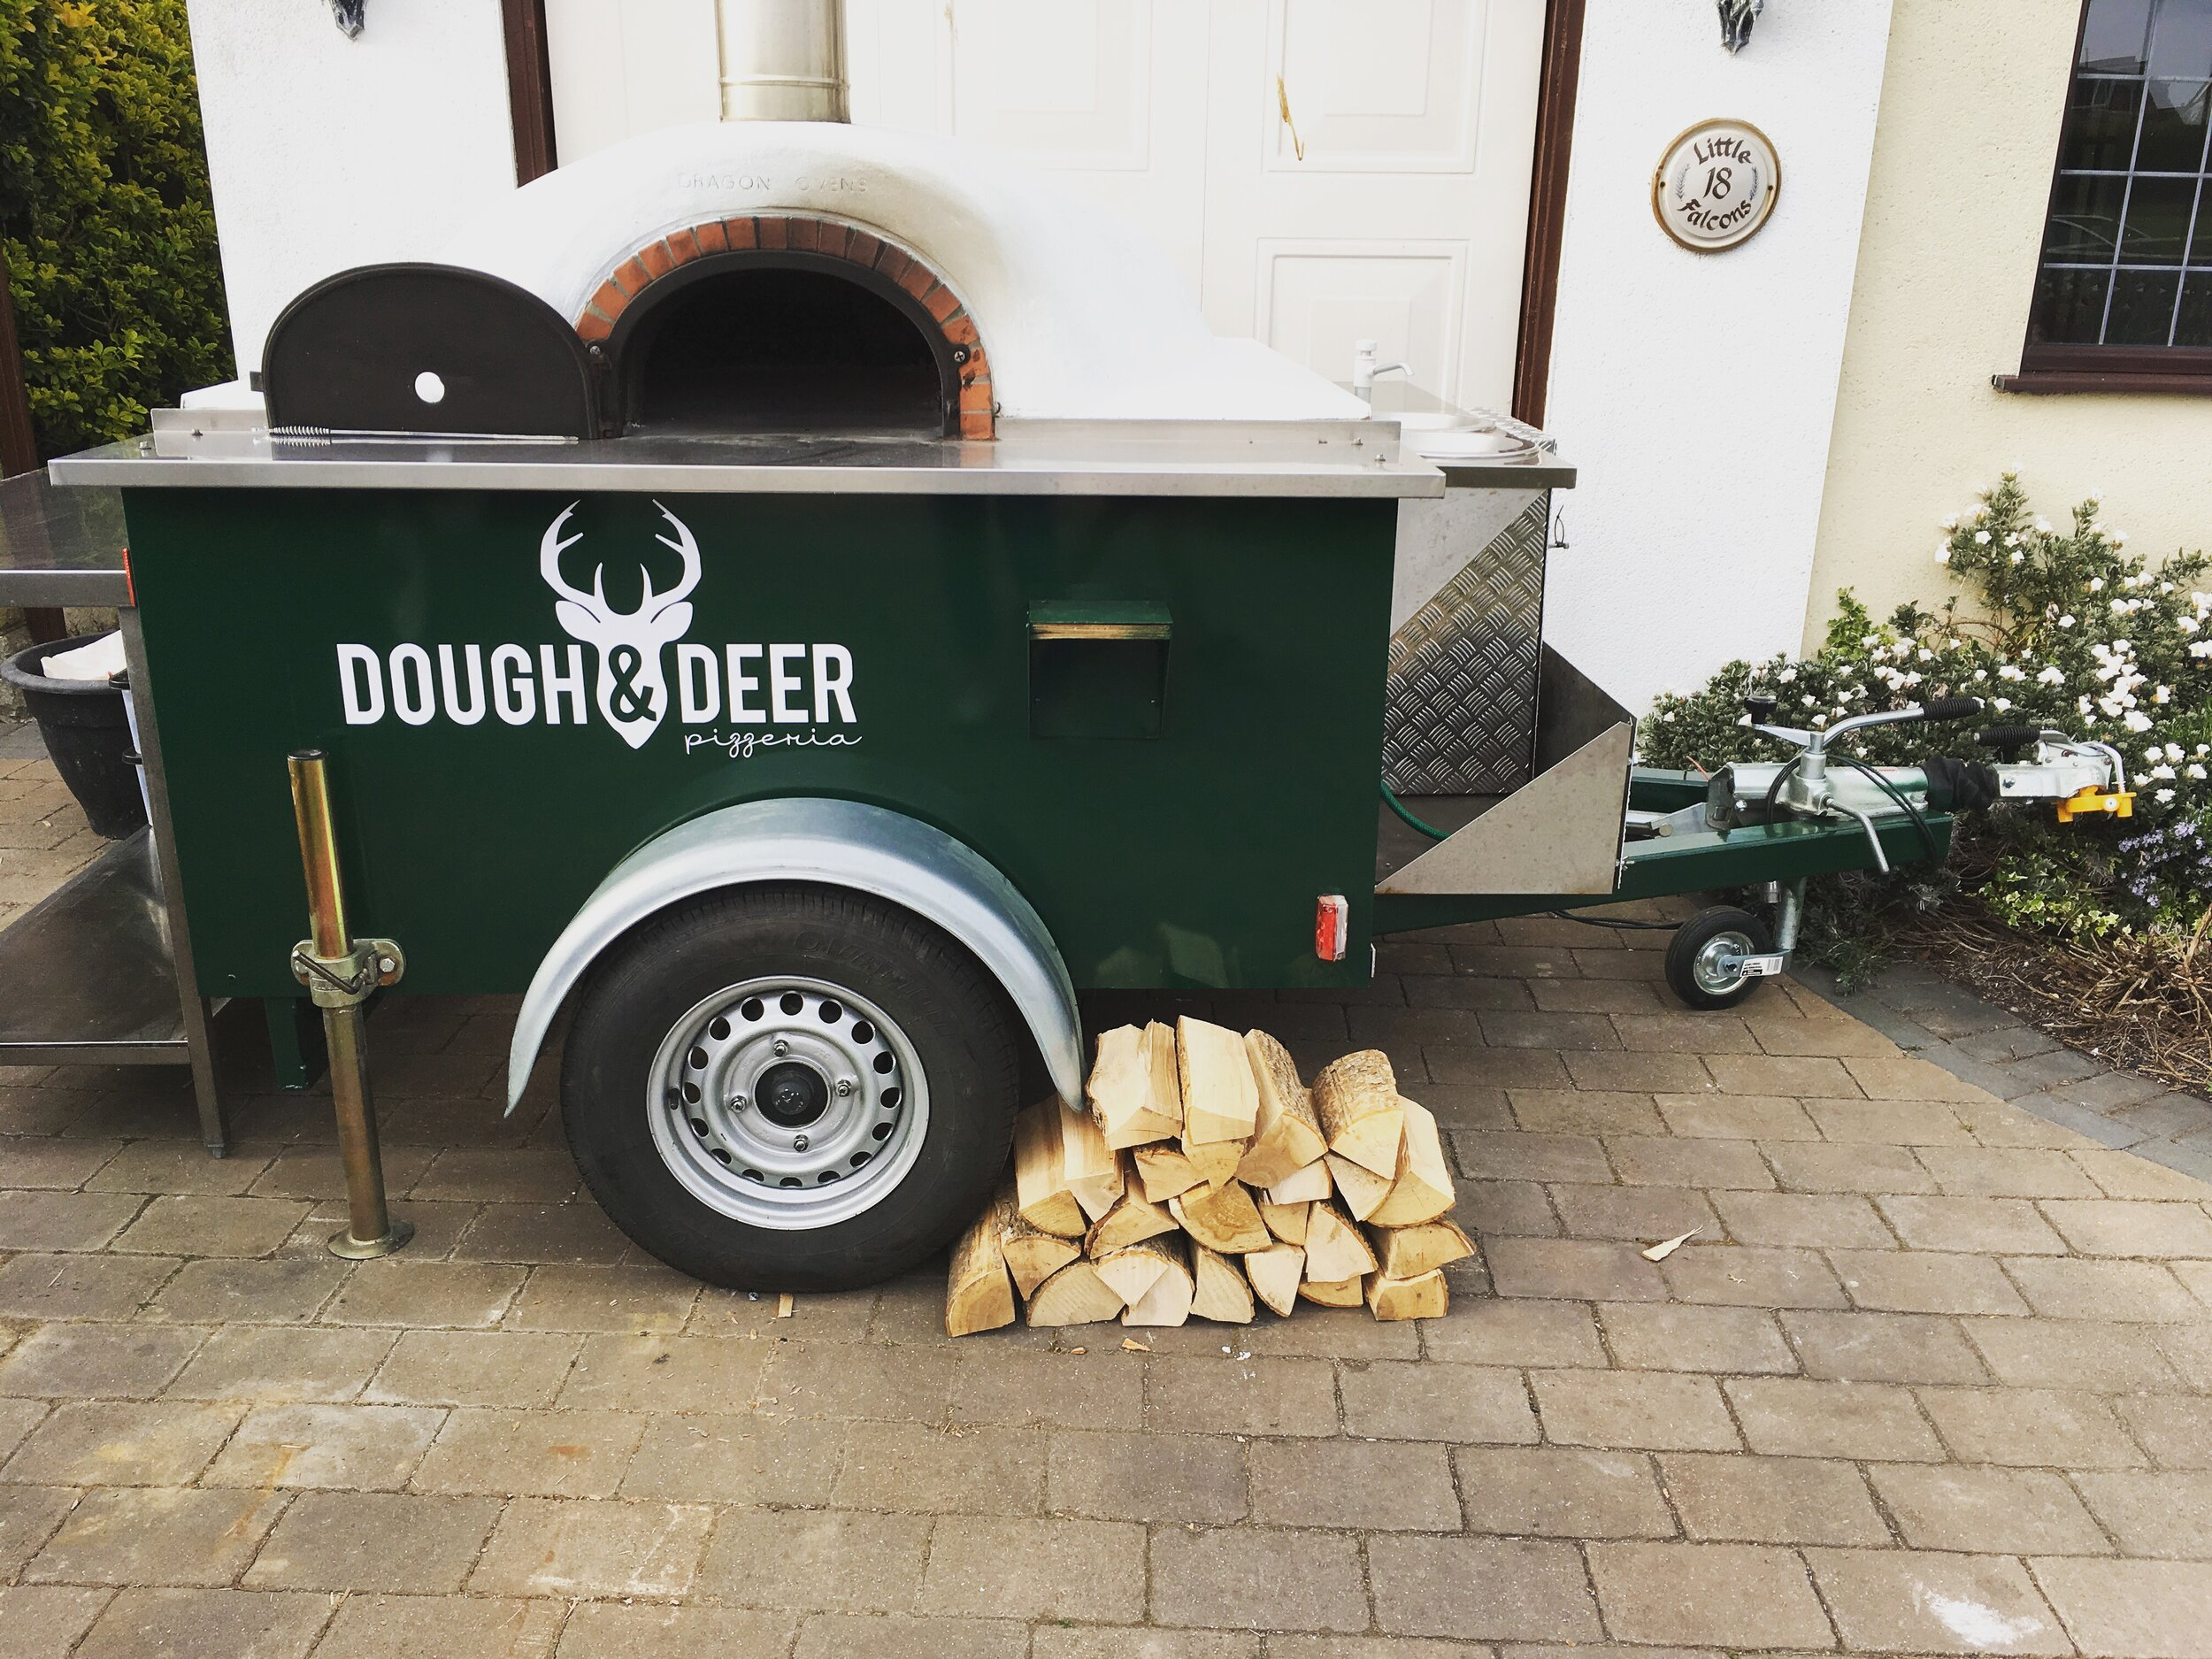 The Fawn - Our Trailer Pizza OVen - Our Mobile Pizza Oven Trailer - the Fawn.Our smaller oven is much more versatile and fit into smaller spaces, she runs at the same capacity as our Land rover cooking up to 80 wood fired pizzas every hour.She may be small but she makes a mighty pizza!